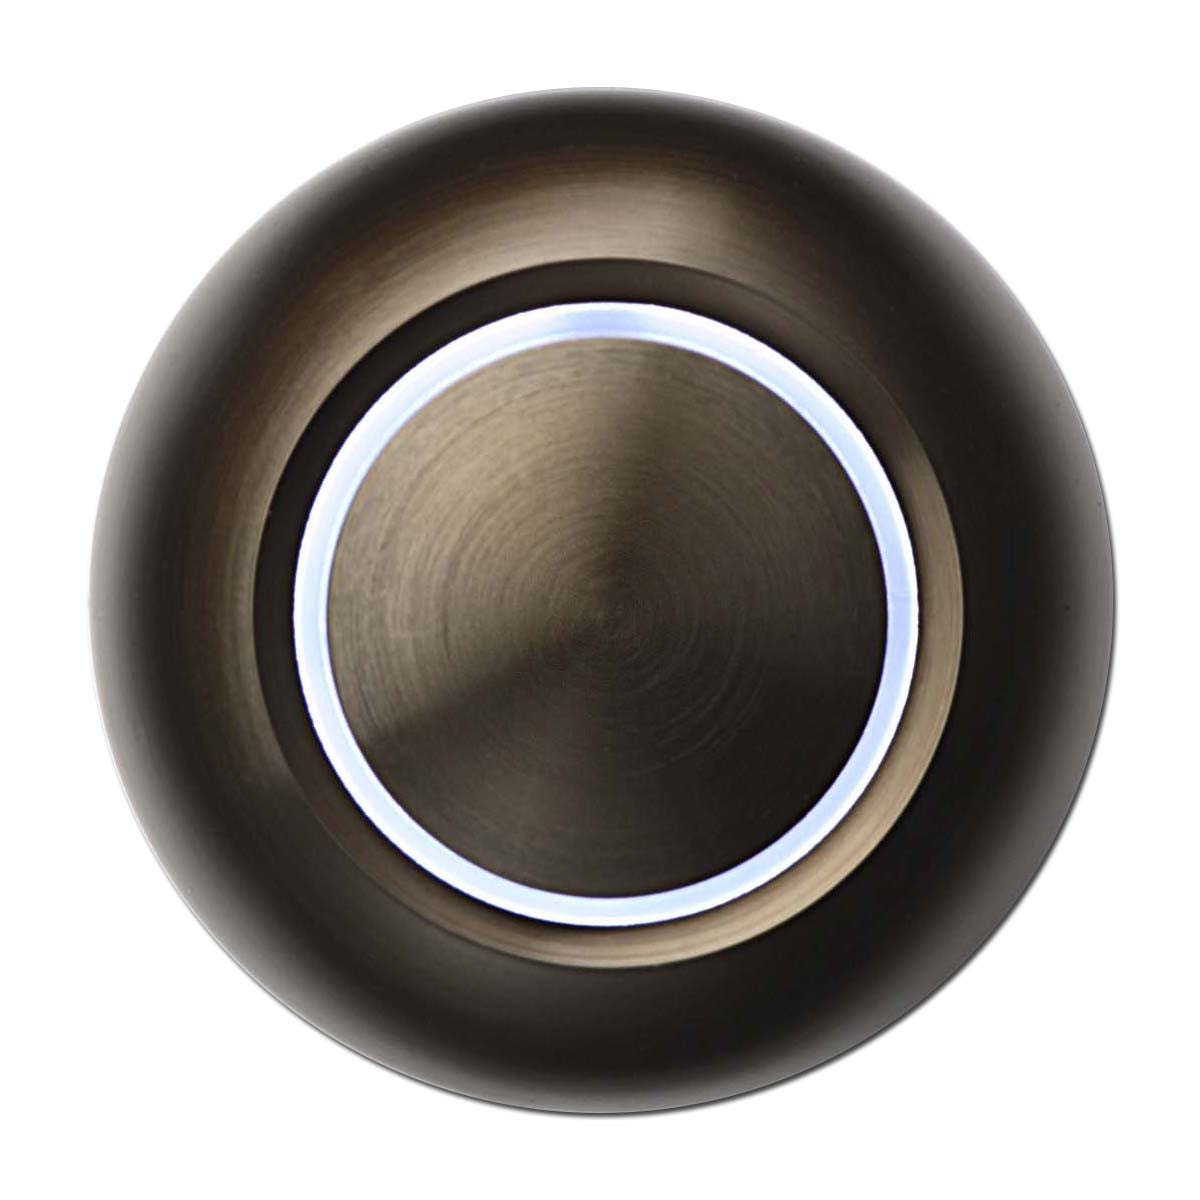 True Doorbell Button | Bronze, White Illumination